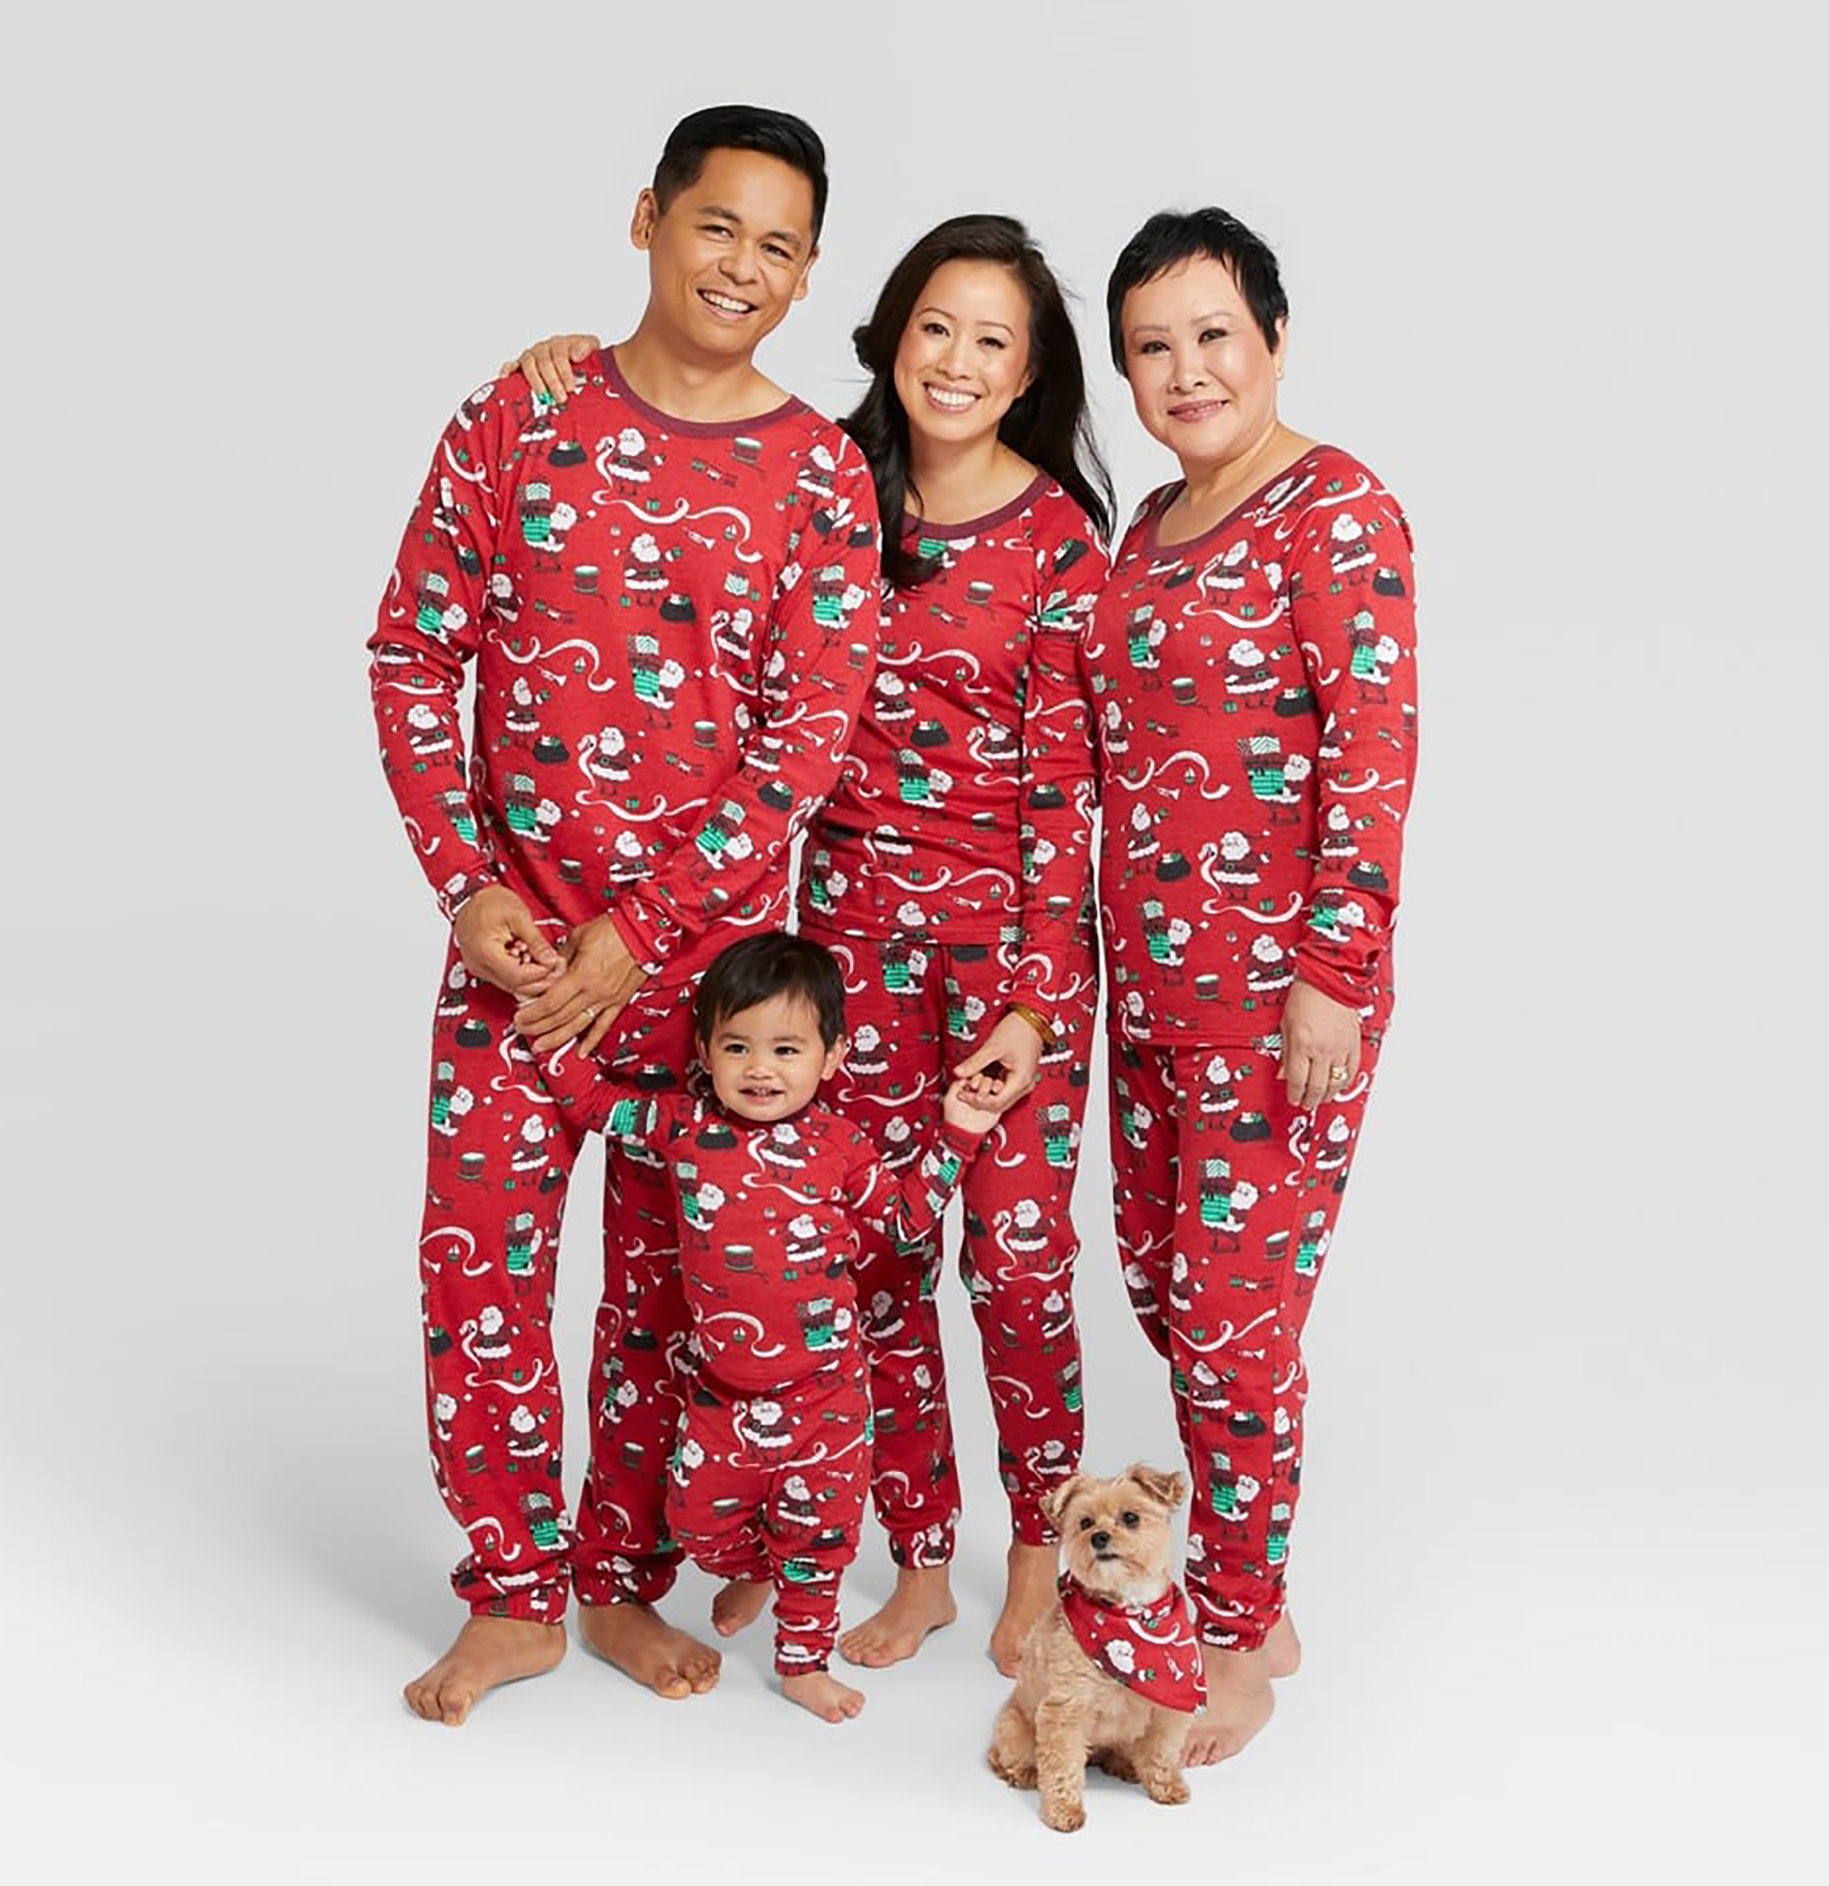 613de6bcc8 Nite Nite Munki Munki Holiday Santa s List Family Pajamas Collection.  Matching Family Pajama Winter ...